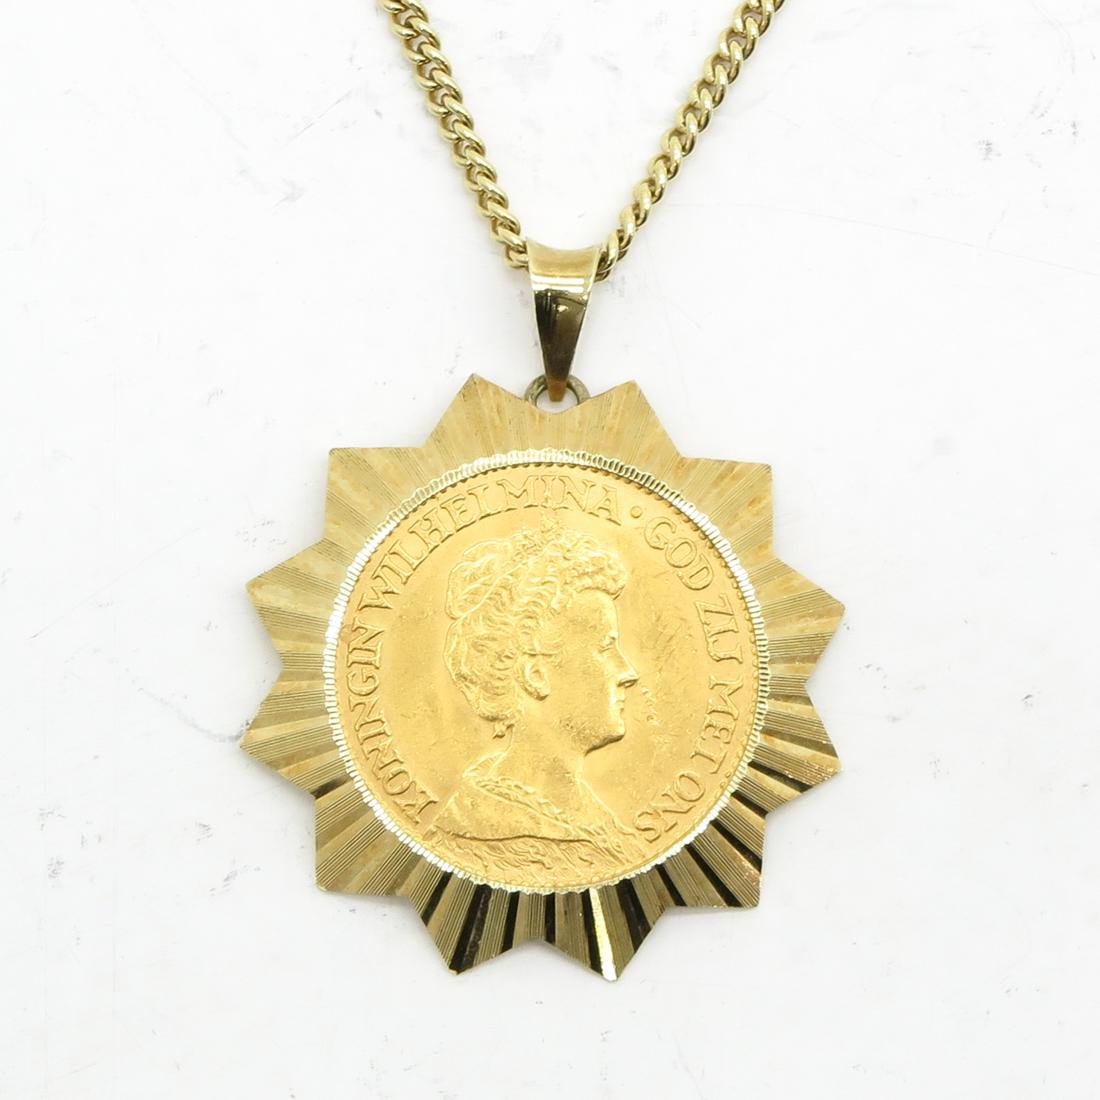 14KG Necklace with Gold Ten Guilder